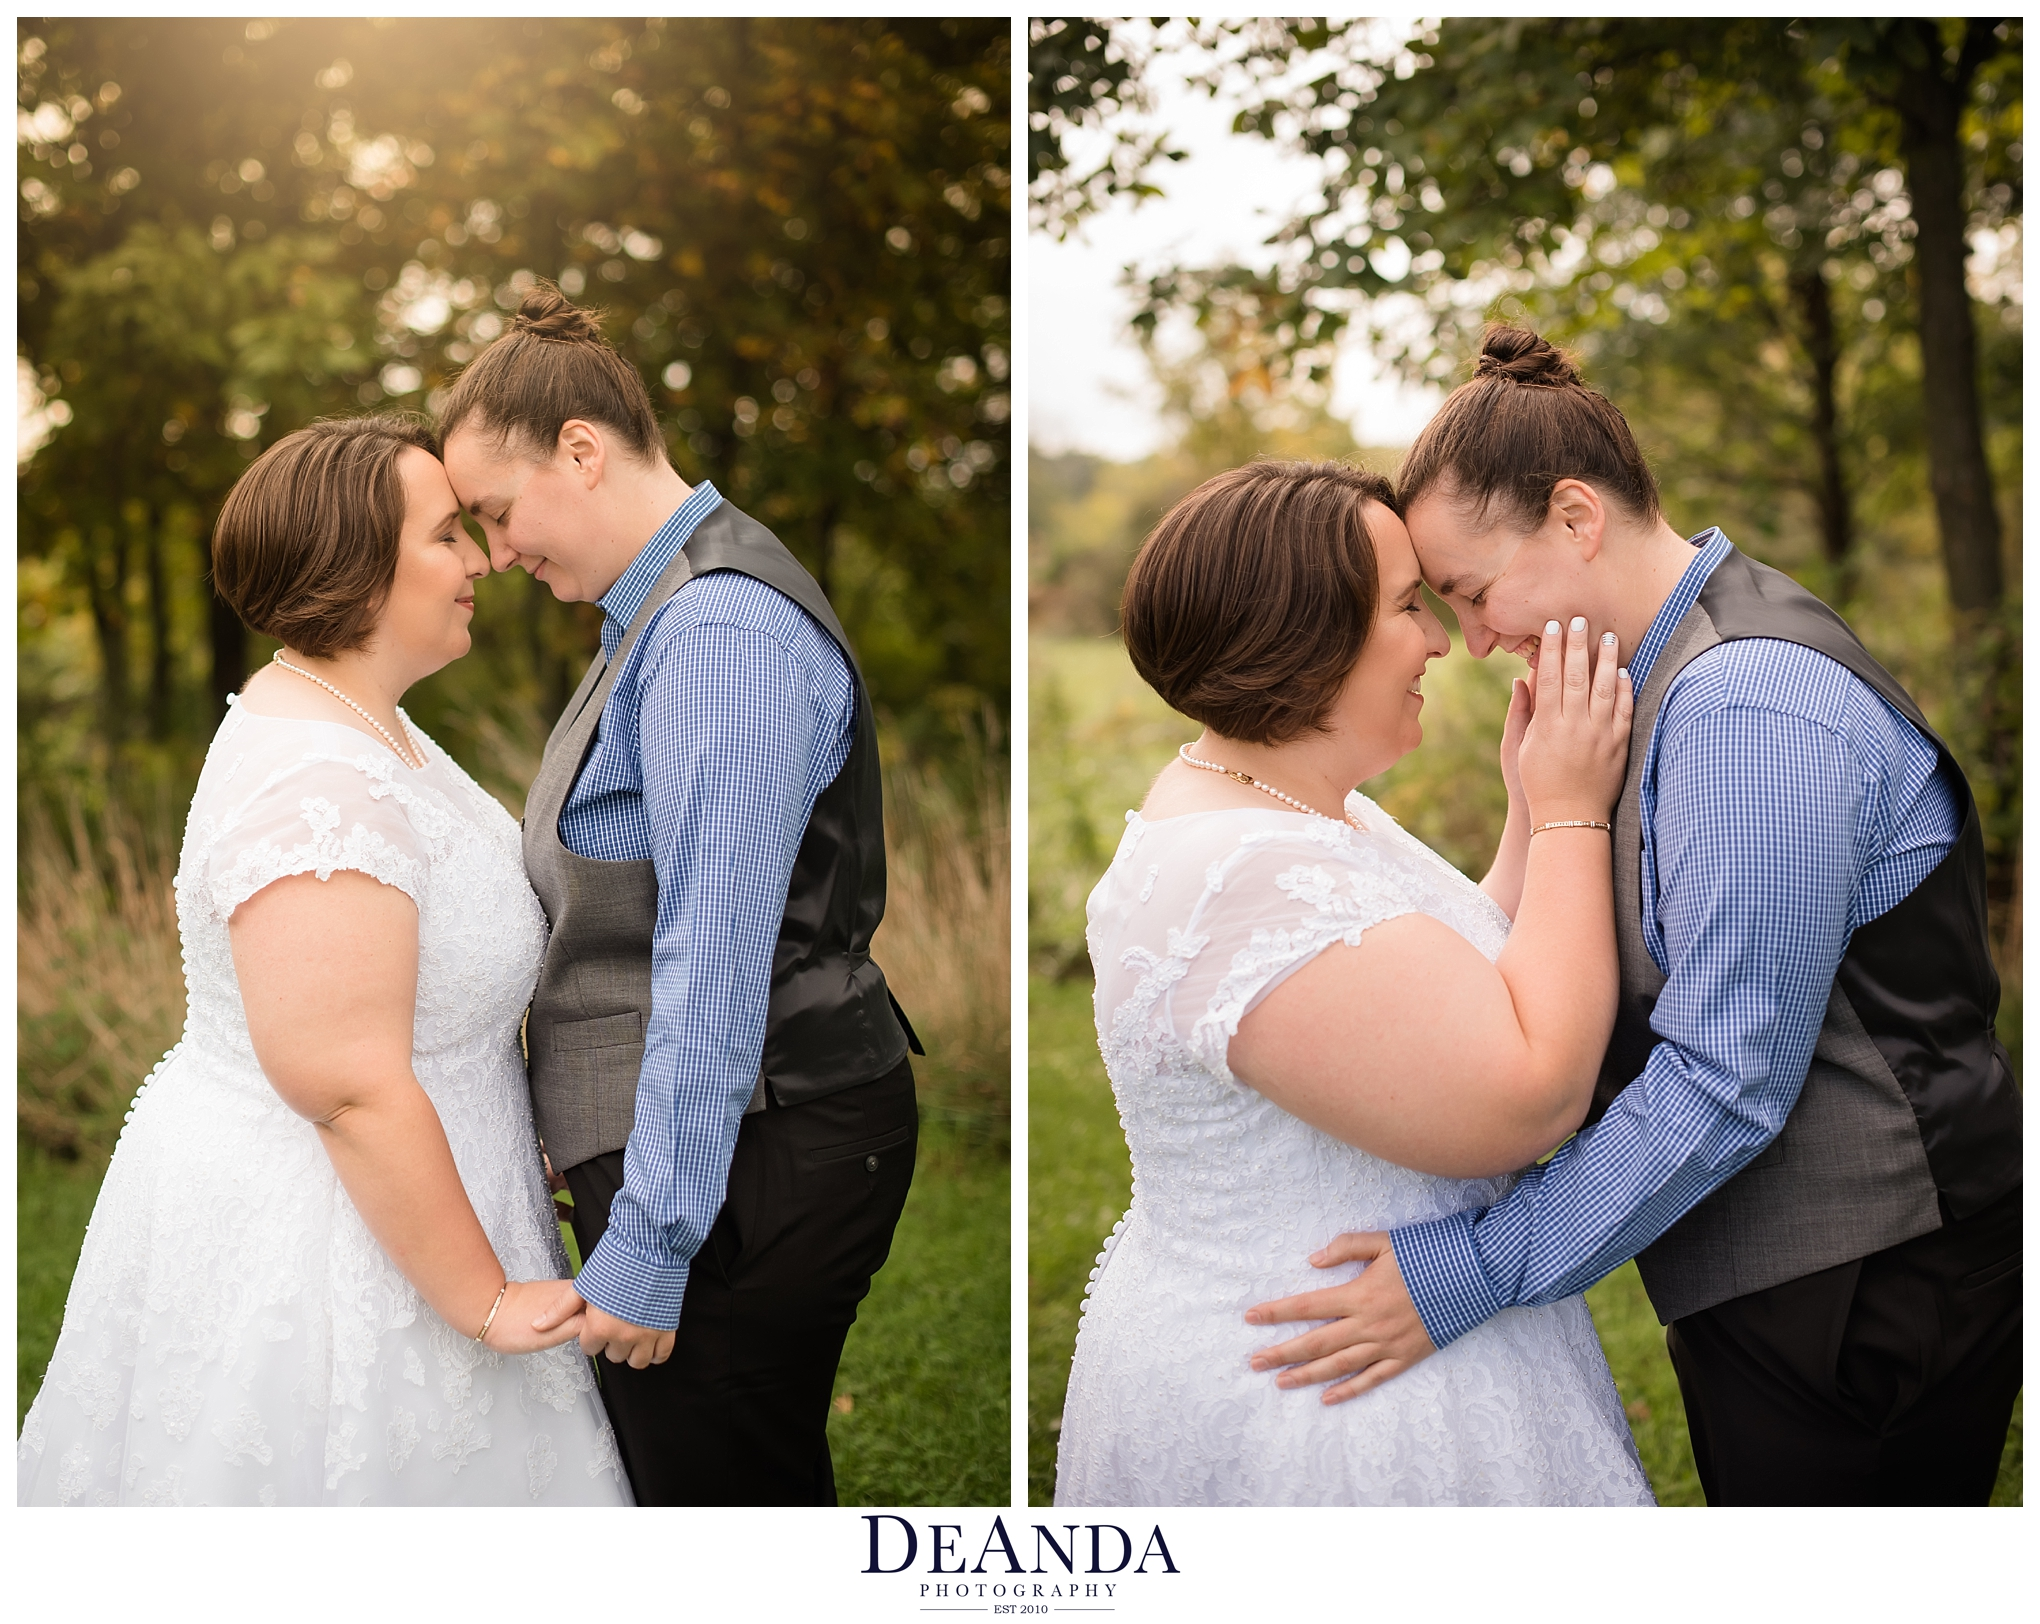 sweet photos of two brides together